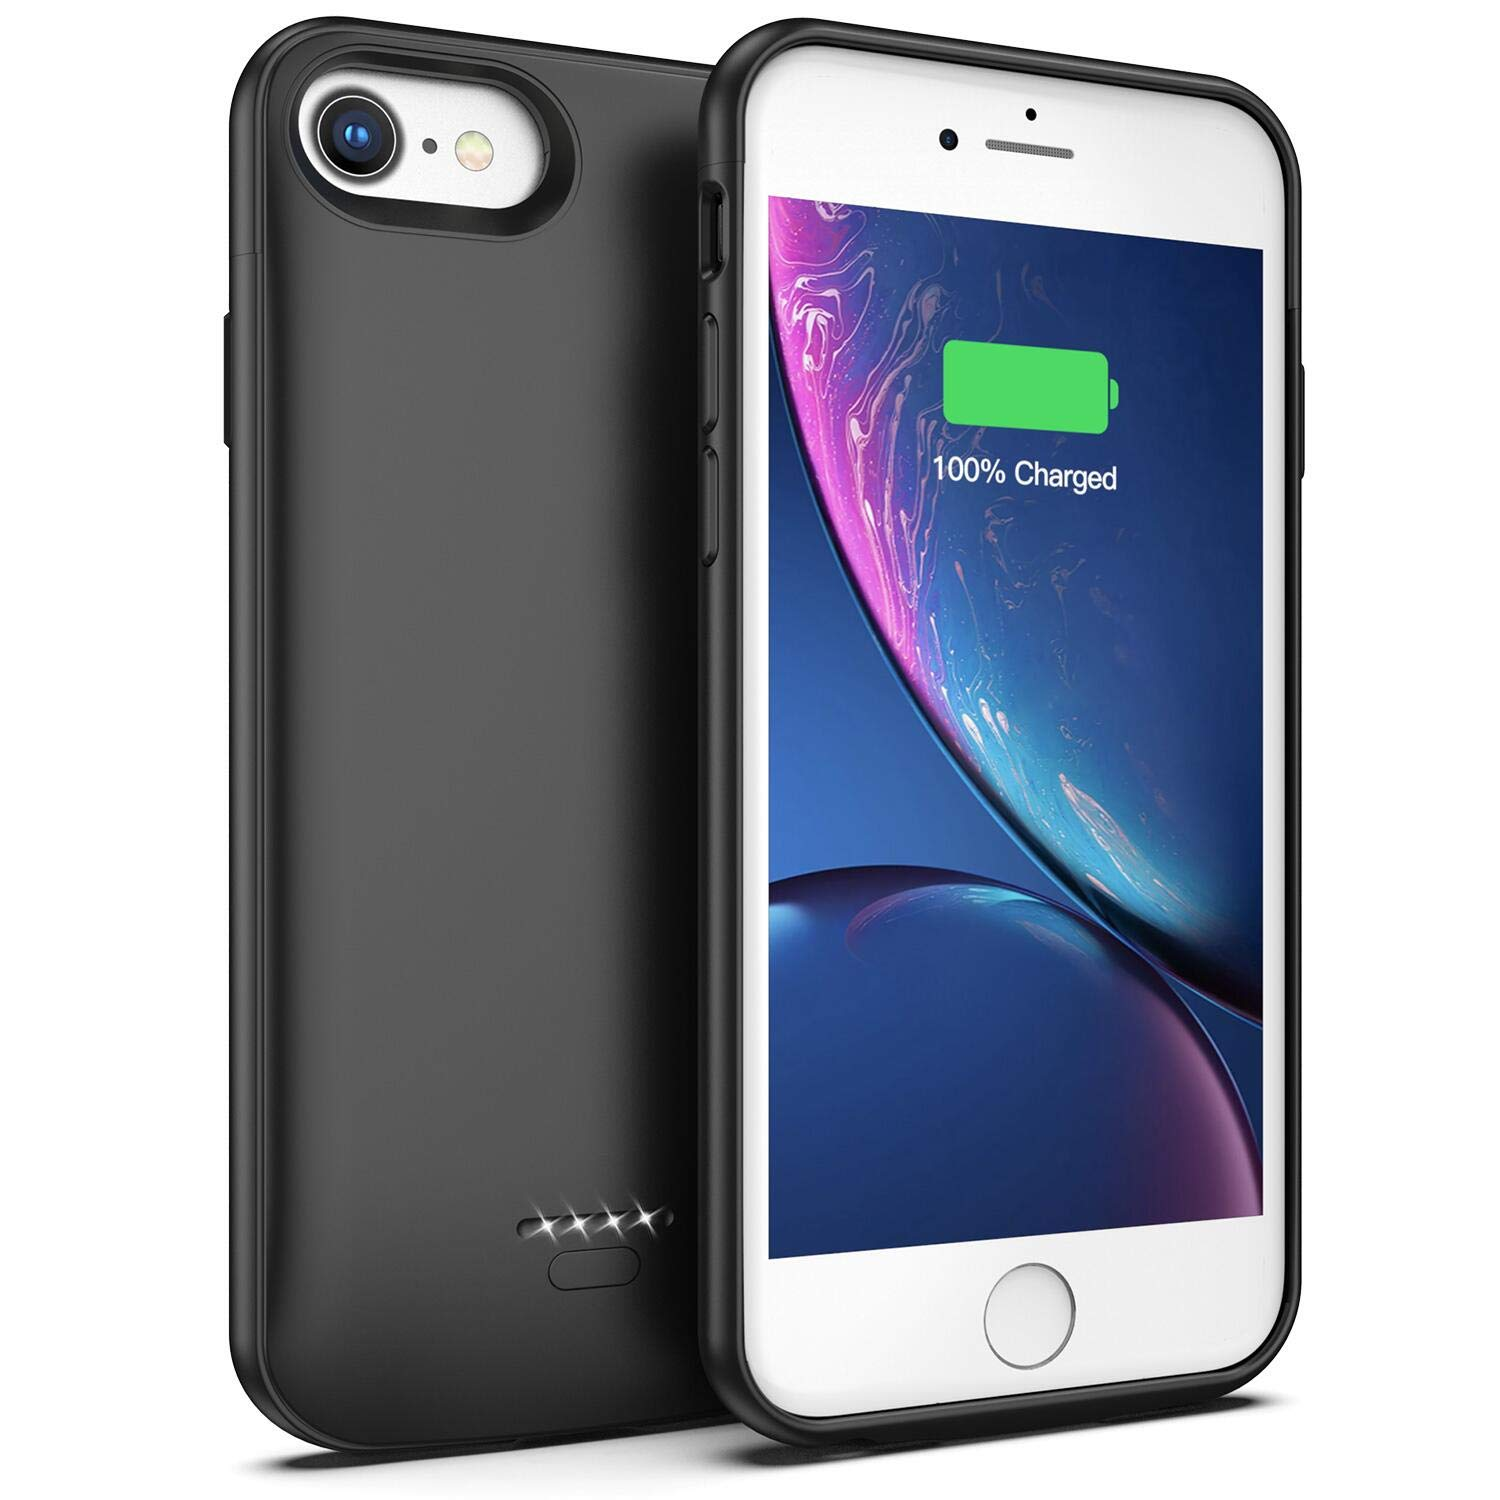 Battery Case for iPhone 7/8, 4000mAh Portable Protective Charging Case Compatible with iPhone 7/8 (4.7 inch) Rechargeable Extended Battery Charger Case (Black)